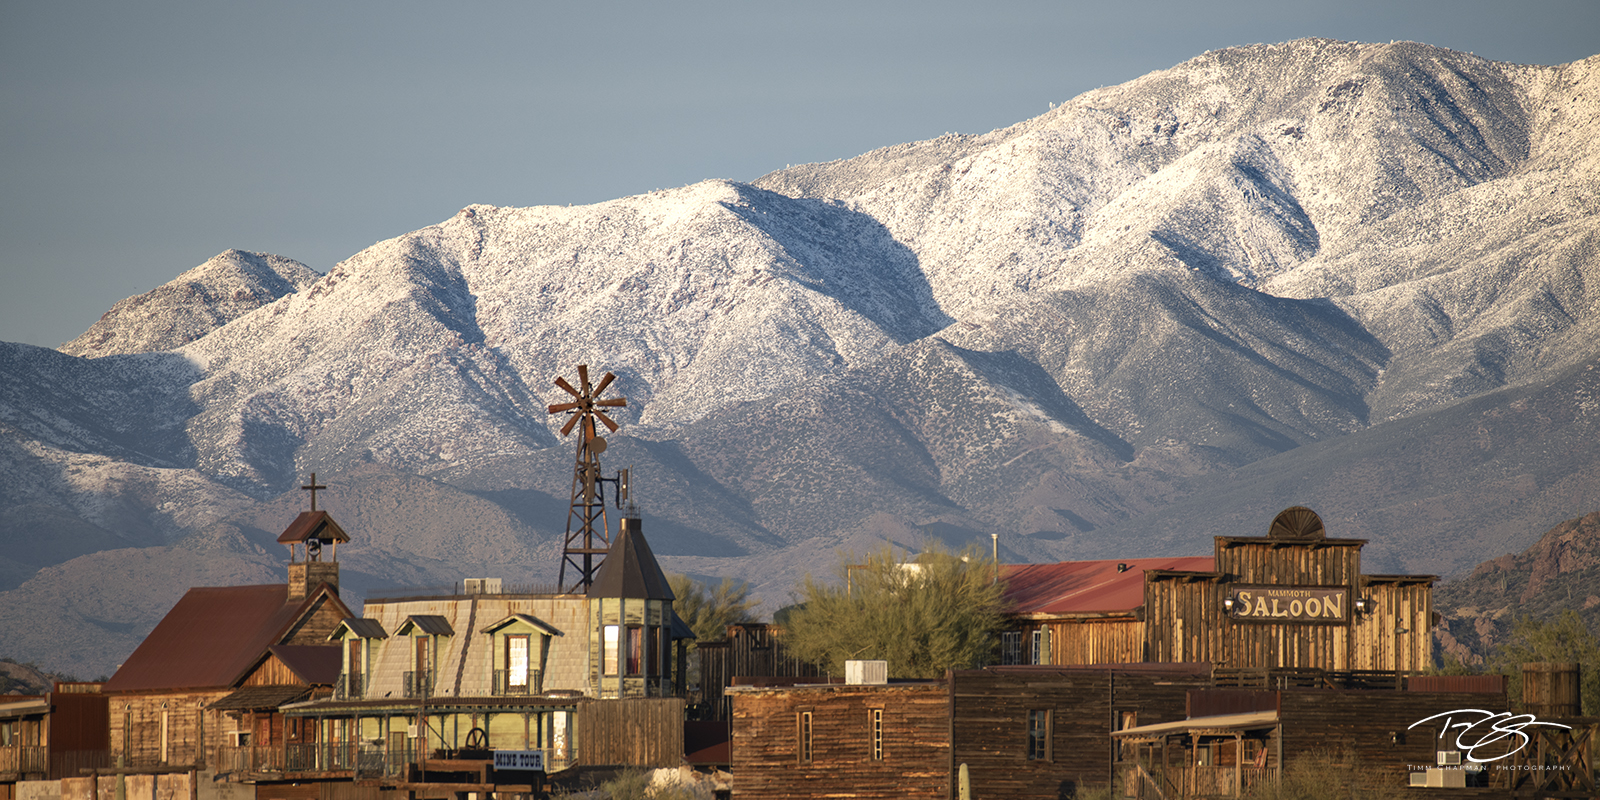 arizona, goldfield, goldfield, ghost town, snow in the desert, four peaks, 4 peaks, barn, abandoned, old west, apache junction, superstition, wilderness, gold canyon, tonto national forest, sonoran de, photo